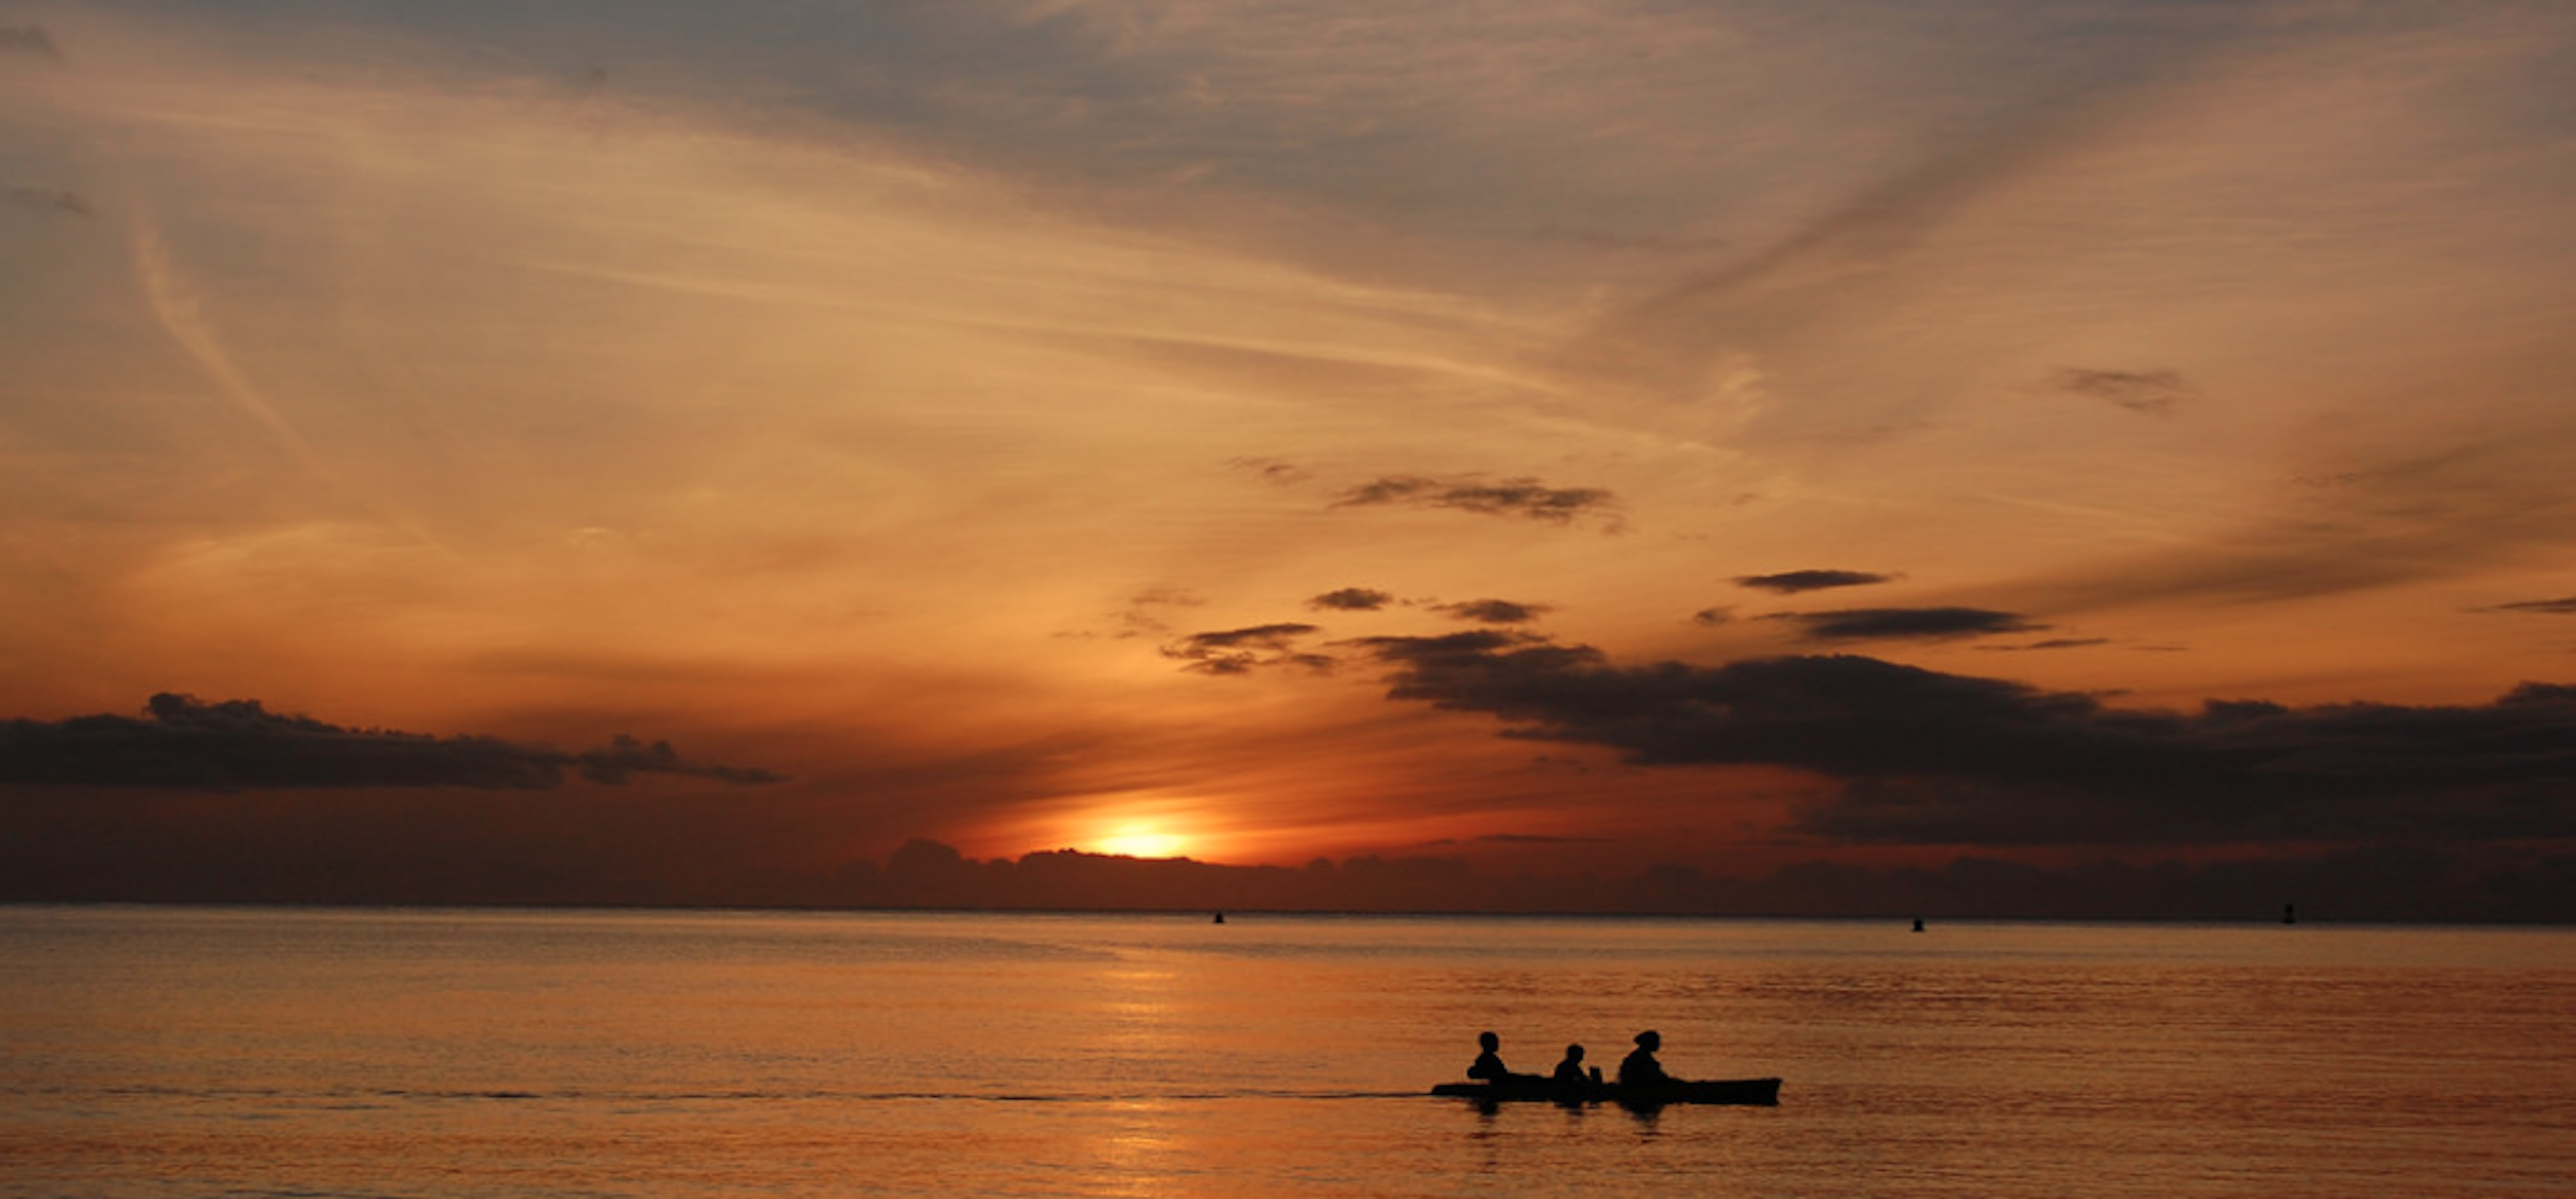 1 - Maui Kayaking via Flickr